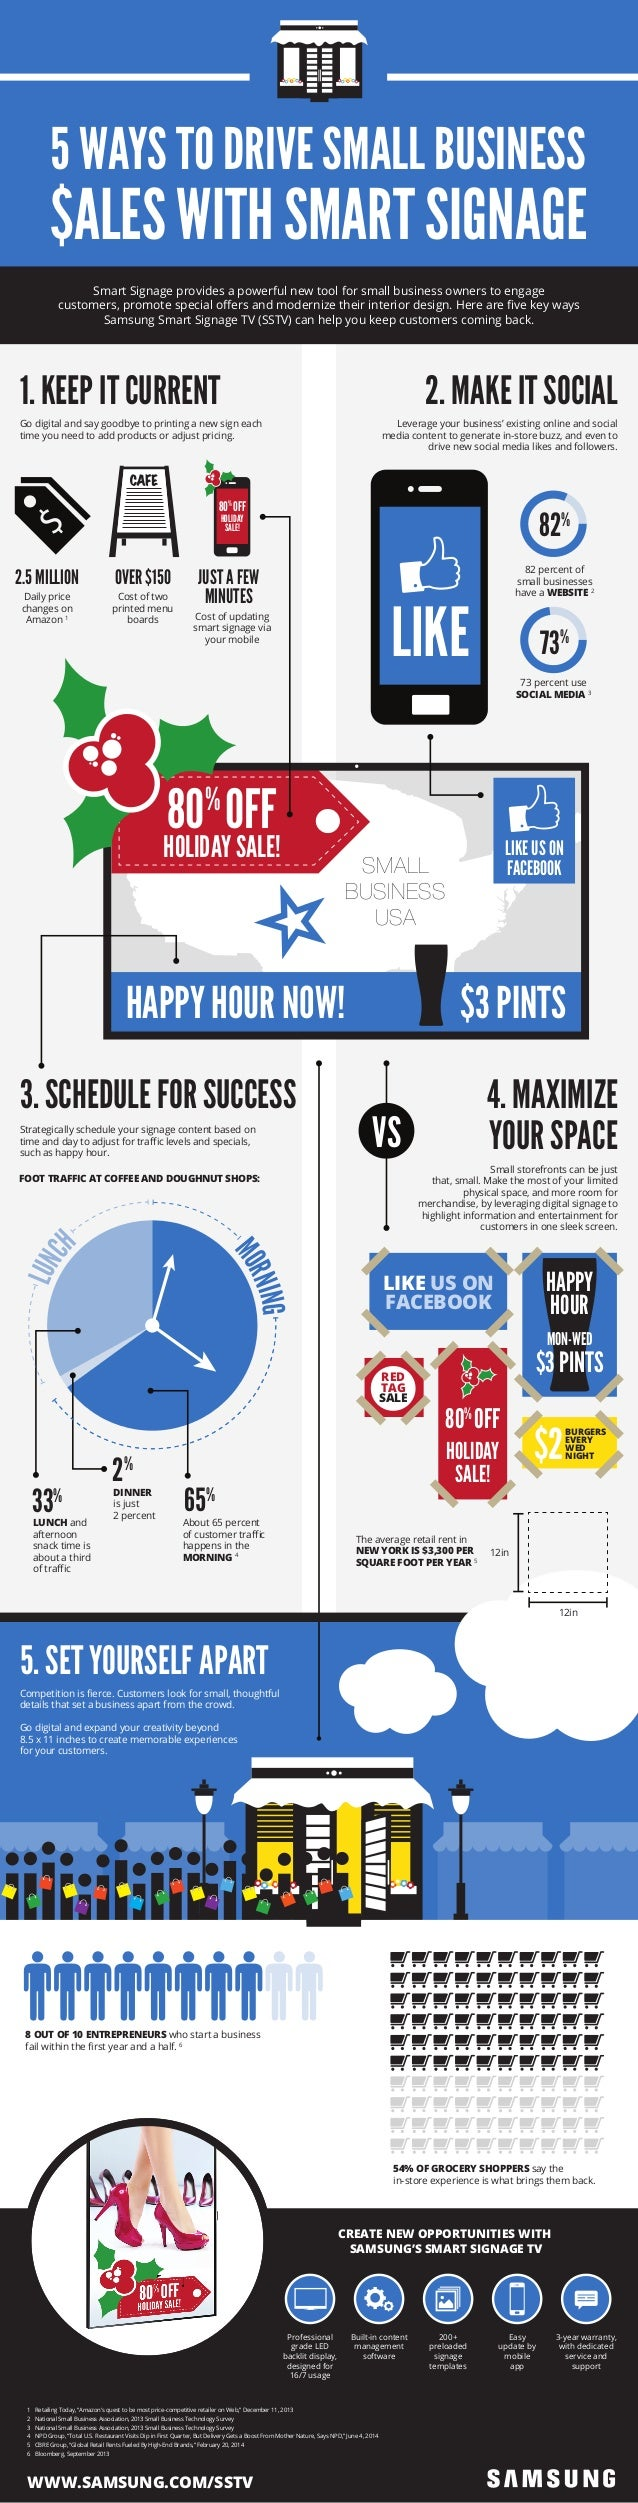 HOLIDAY SALE! 80% OFF HAPPY HOUR NOW! $3 PINTS SMALL BUSINESS USA LIKE US ON FACEBOOK 1. KEEP IT CURRENT Go digital and sa...